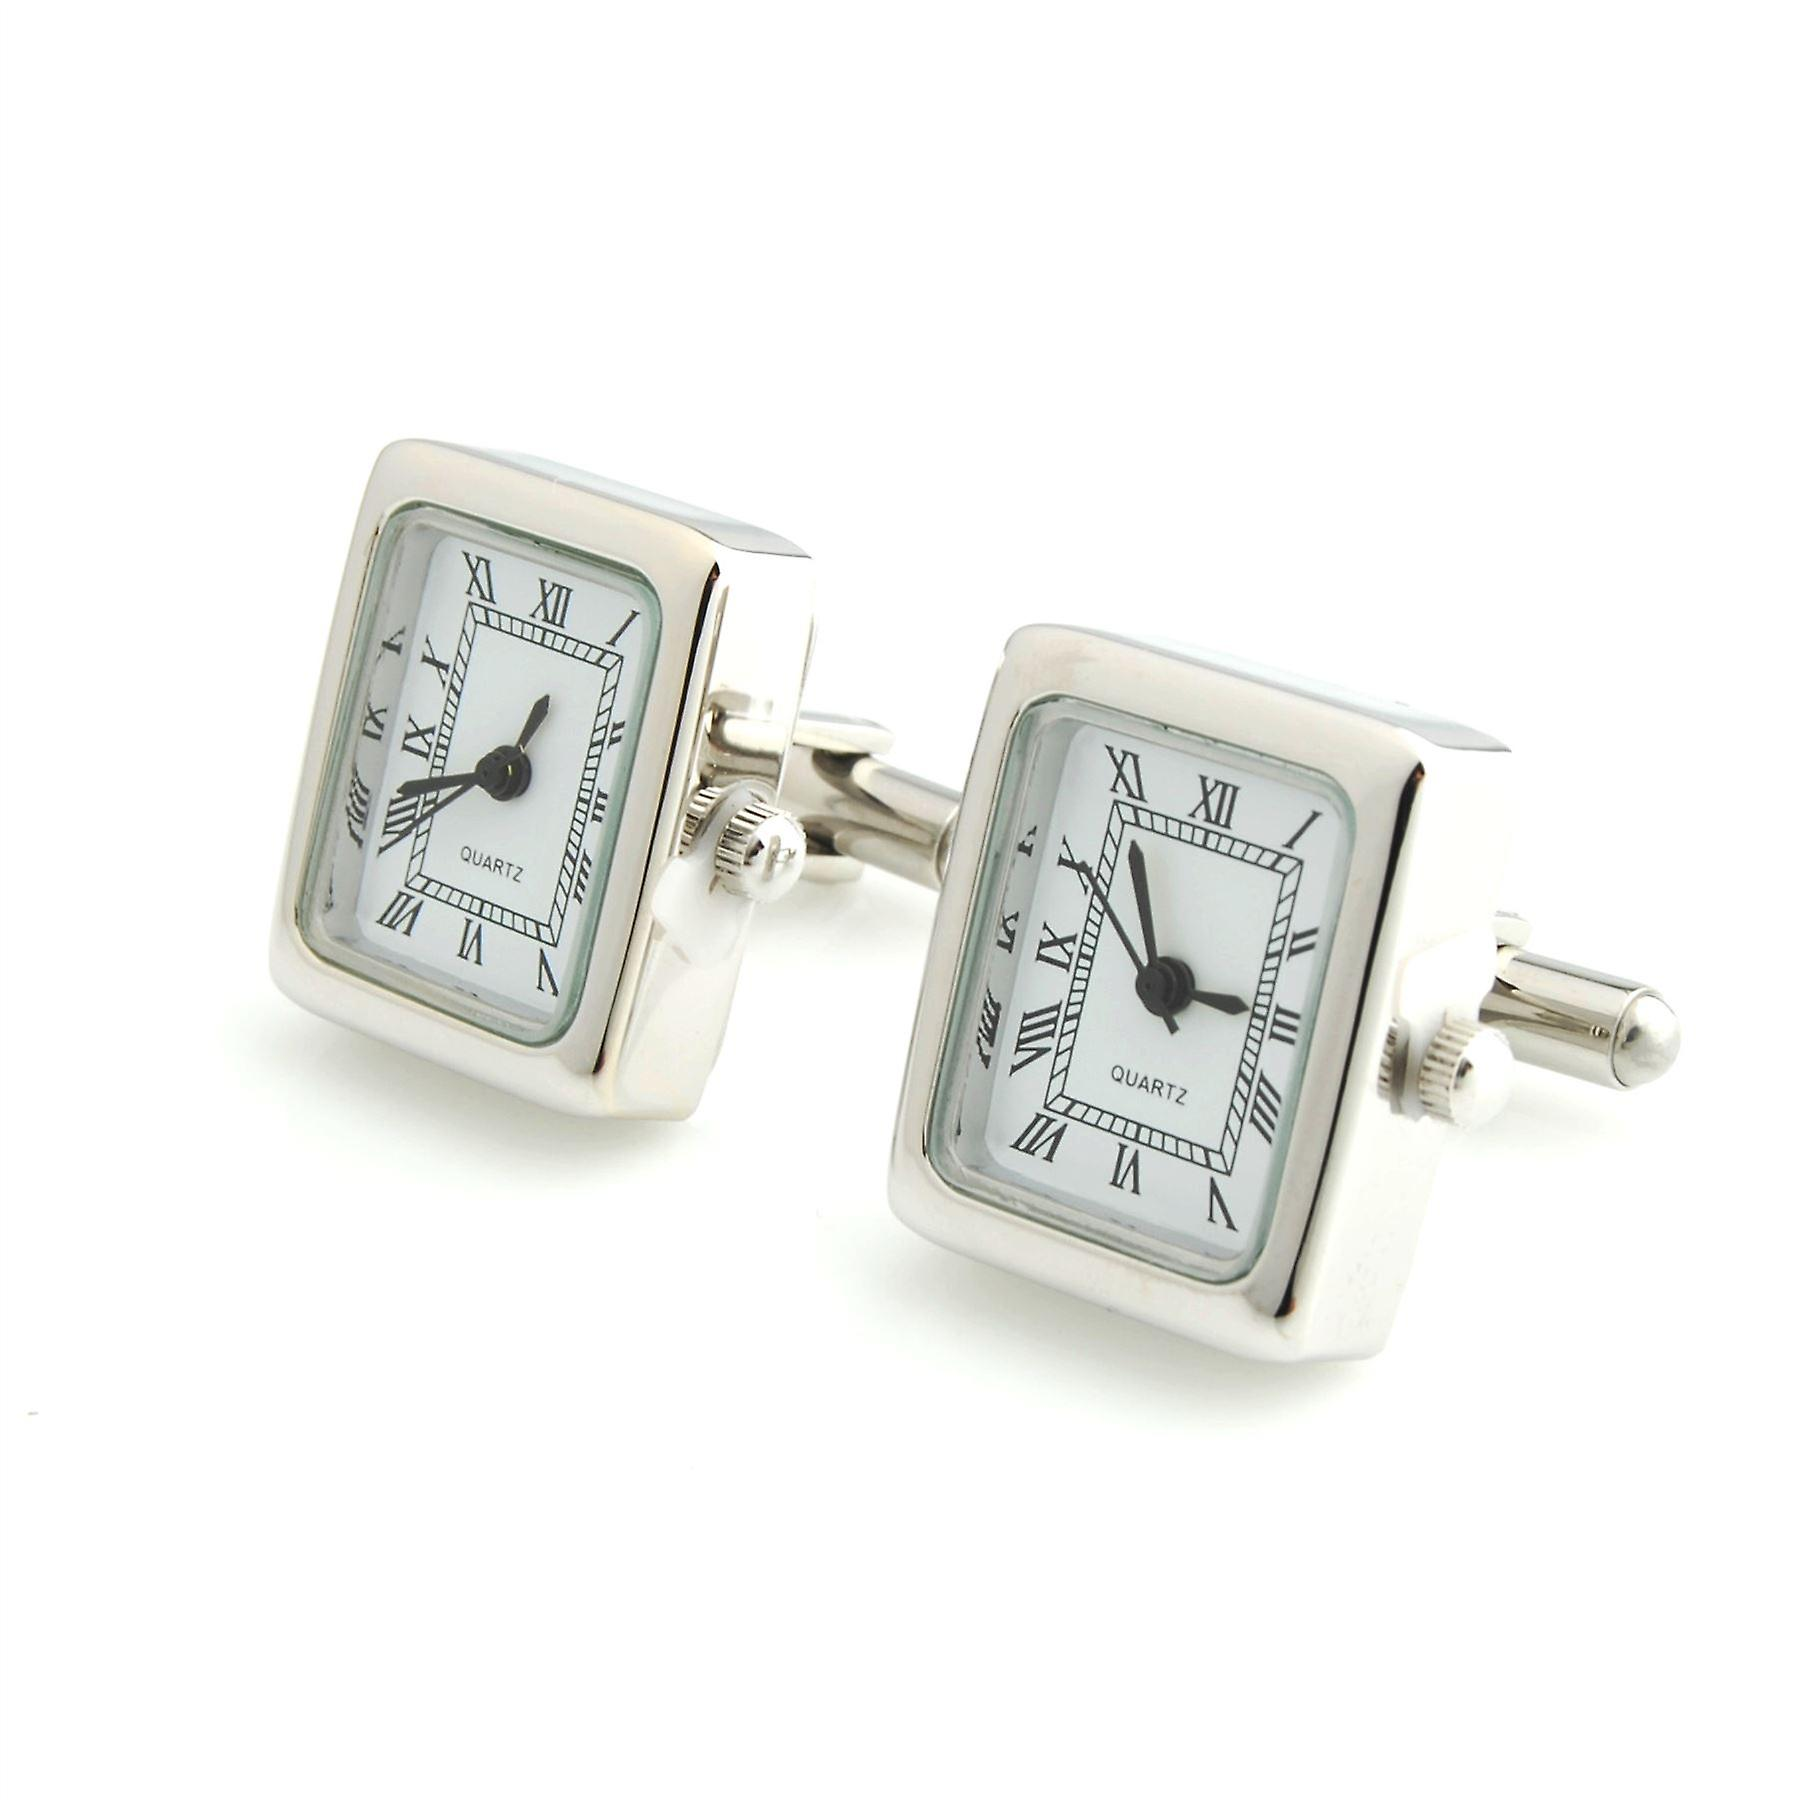 Mens Ladies Working Silver Tone Square Clock Watch Cufflinks Wedding Formal Business